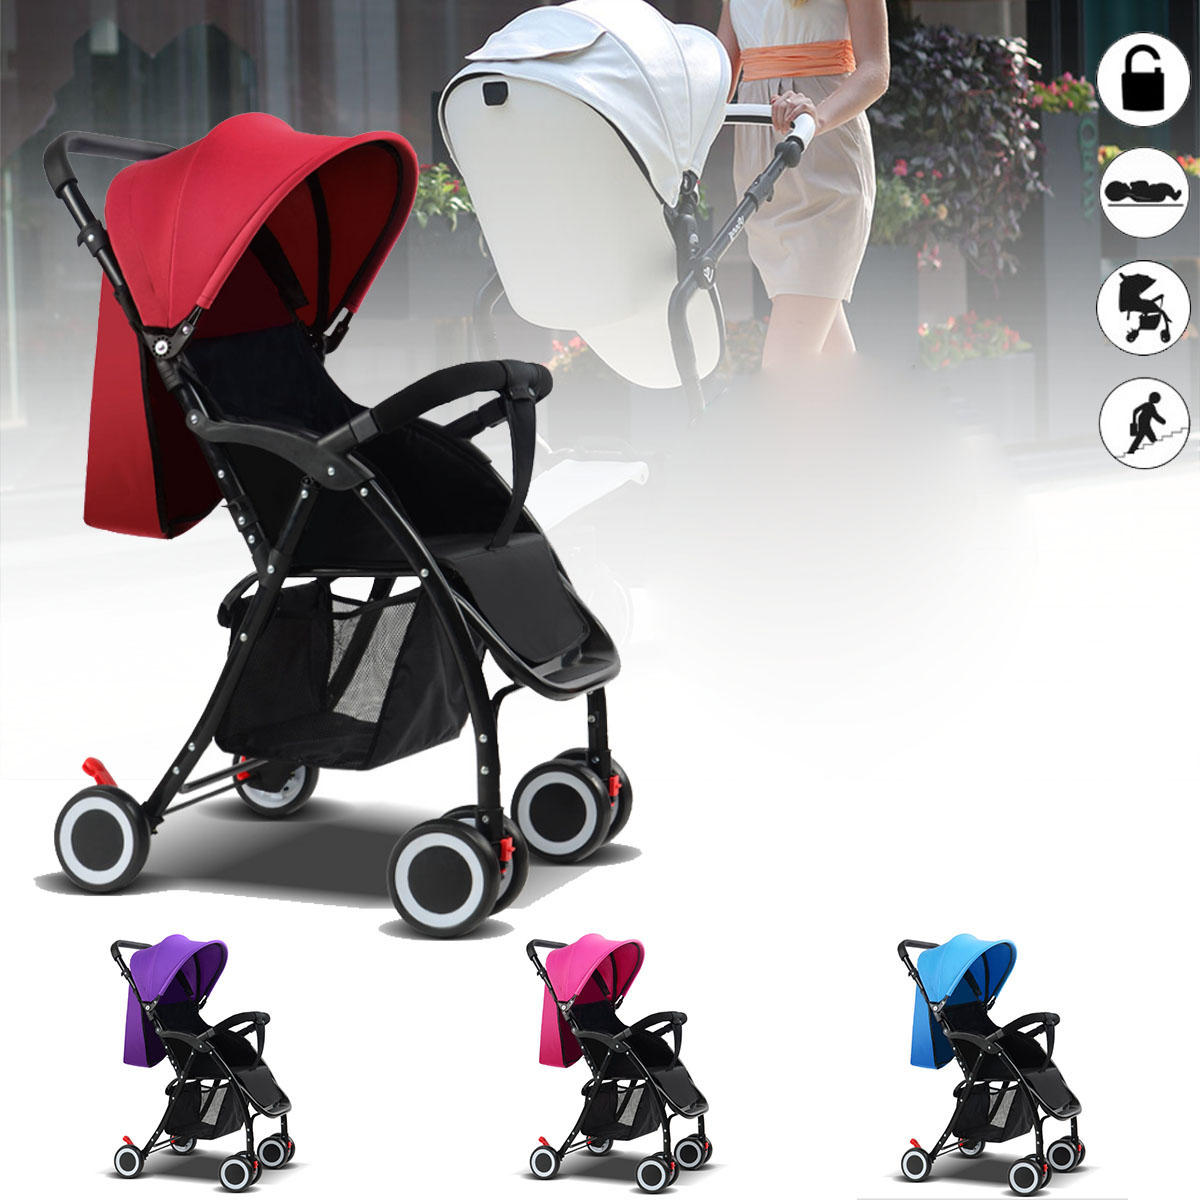 Lightweight Folding Pram Foldable Baby Kids Travel Stroller Newborn Infant Pushchair Buggy Pram Lightweight Baby Carriage